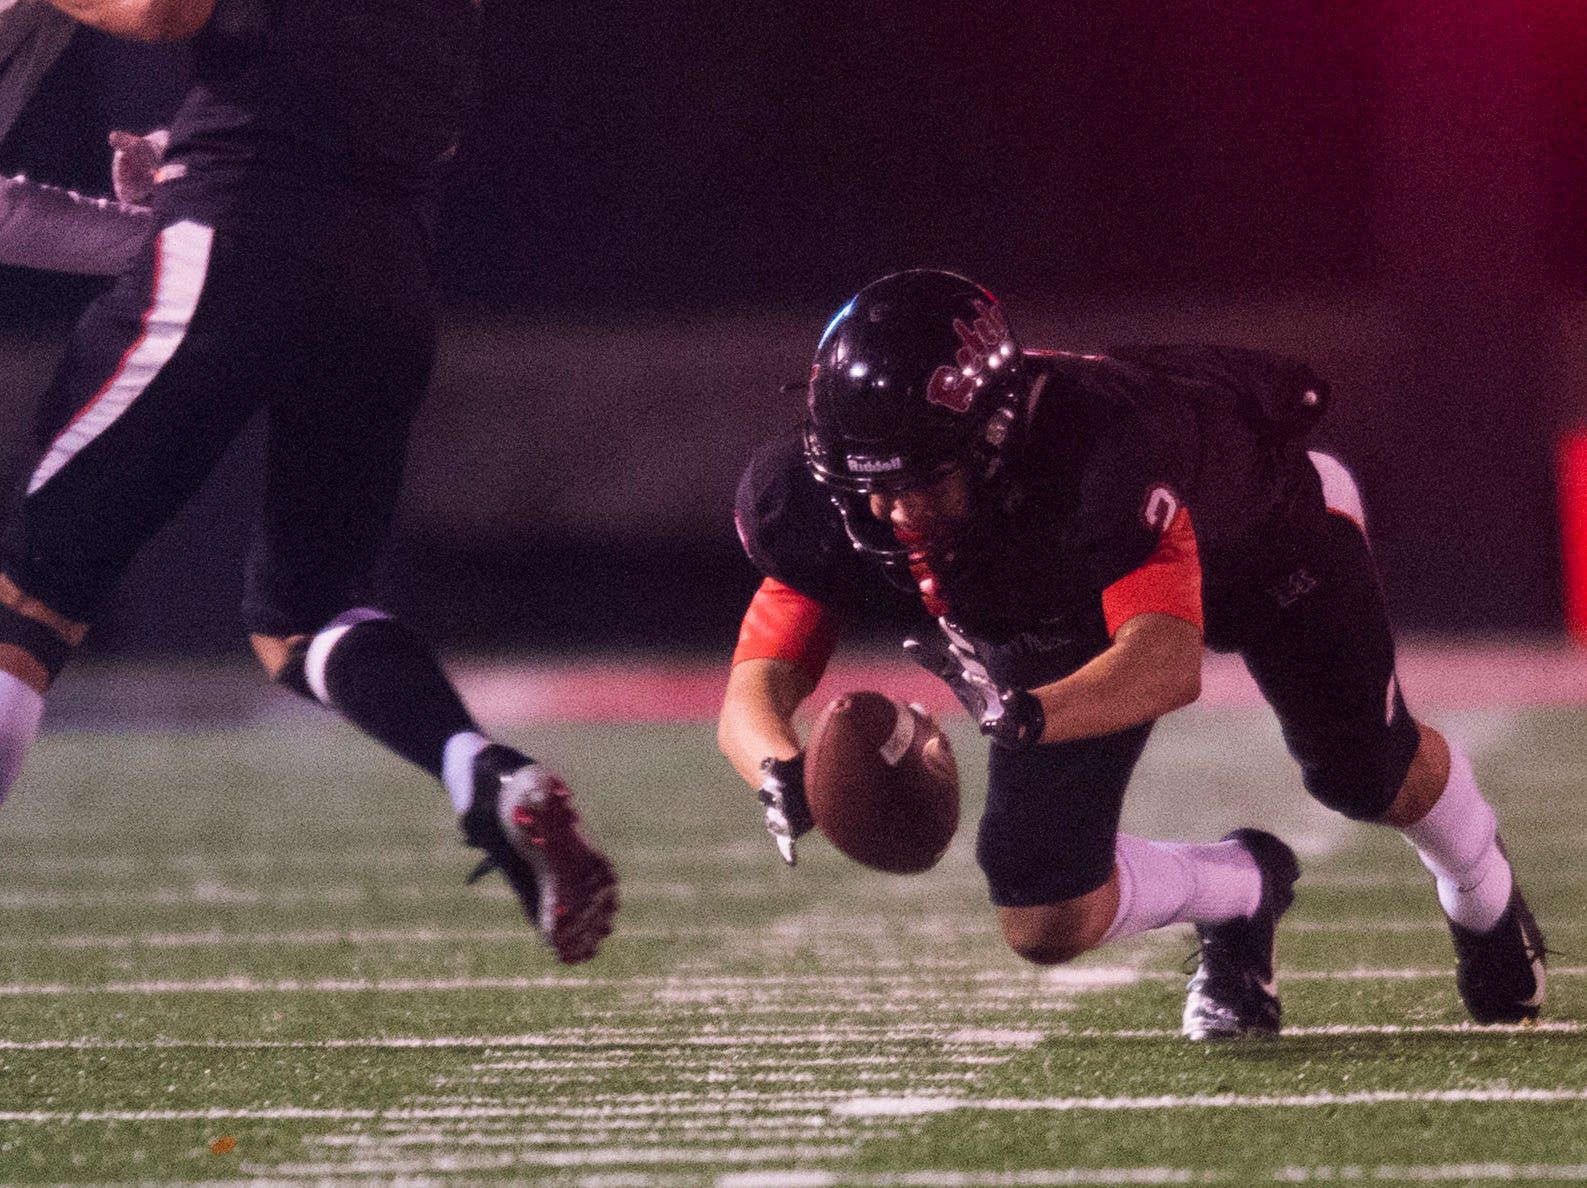 Maryville's Ashton Maples (2) dives for the ball during a 6A quarterfinal game between Maryville and Farragut at Maryville Friday, Nov. 16, 2018. Maryville defeated Farragut 26-10.